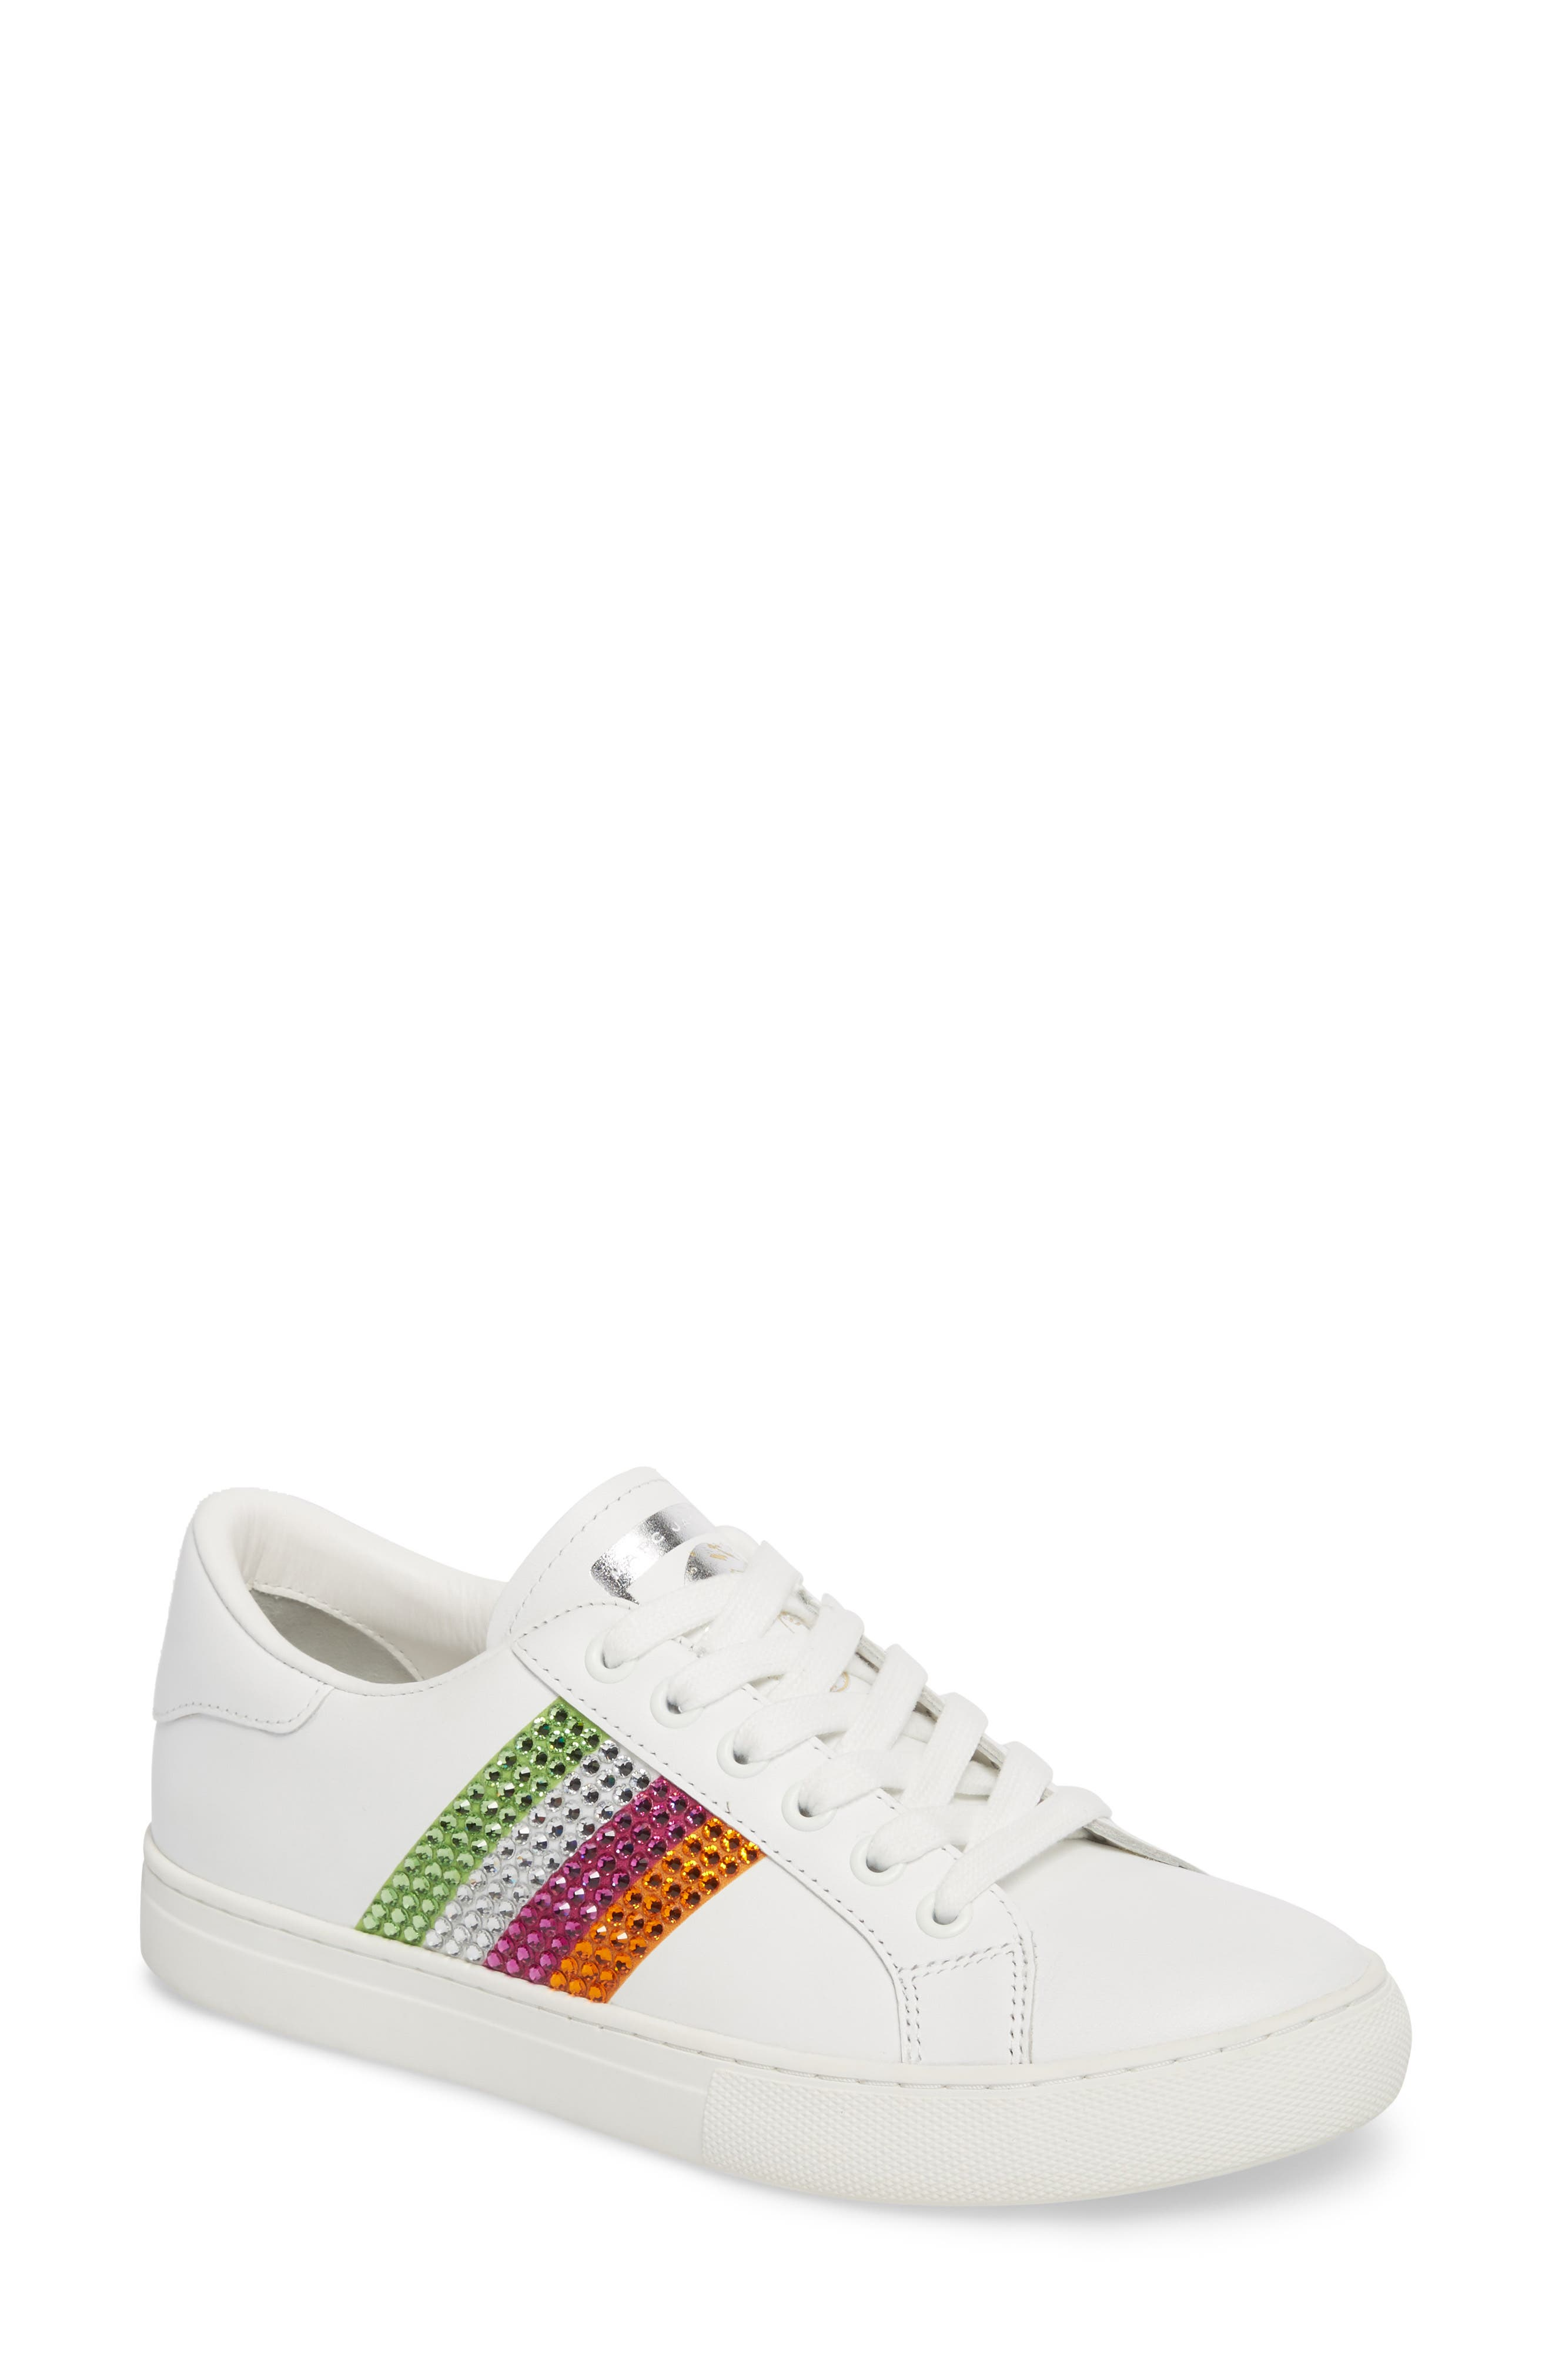 Main Image - MARC JACOBS Empire Crystal Embellished Sneaker (Women)